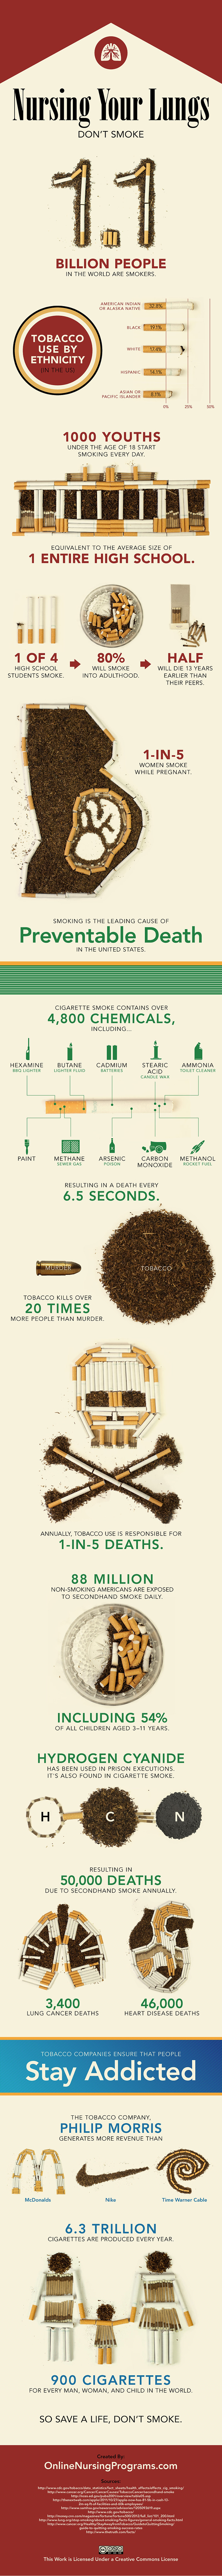 tobacco info graphic